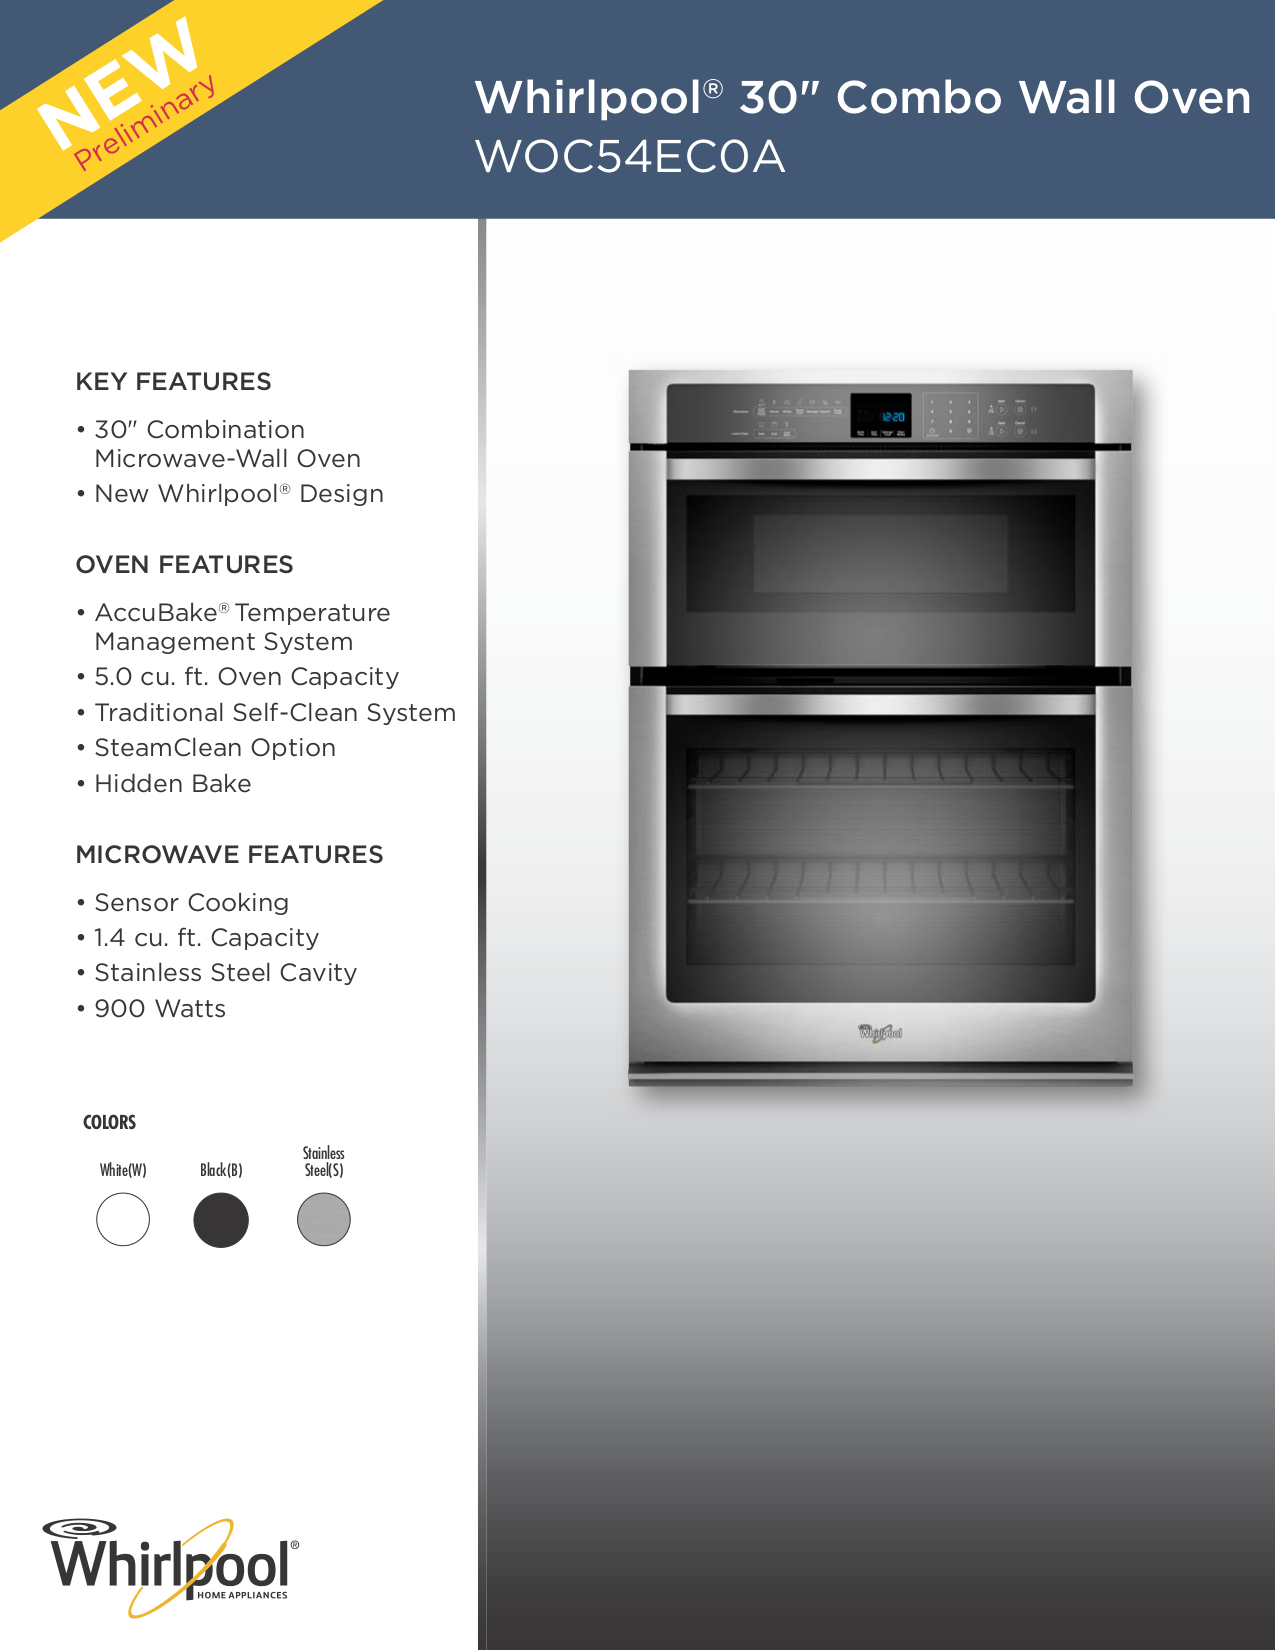 Pdf For Whirlpool Other Rmc305pv Microwave Oven Combo Manual